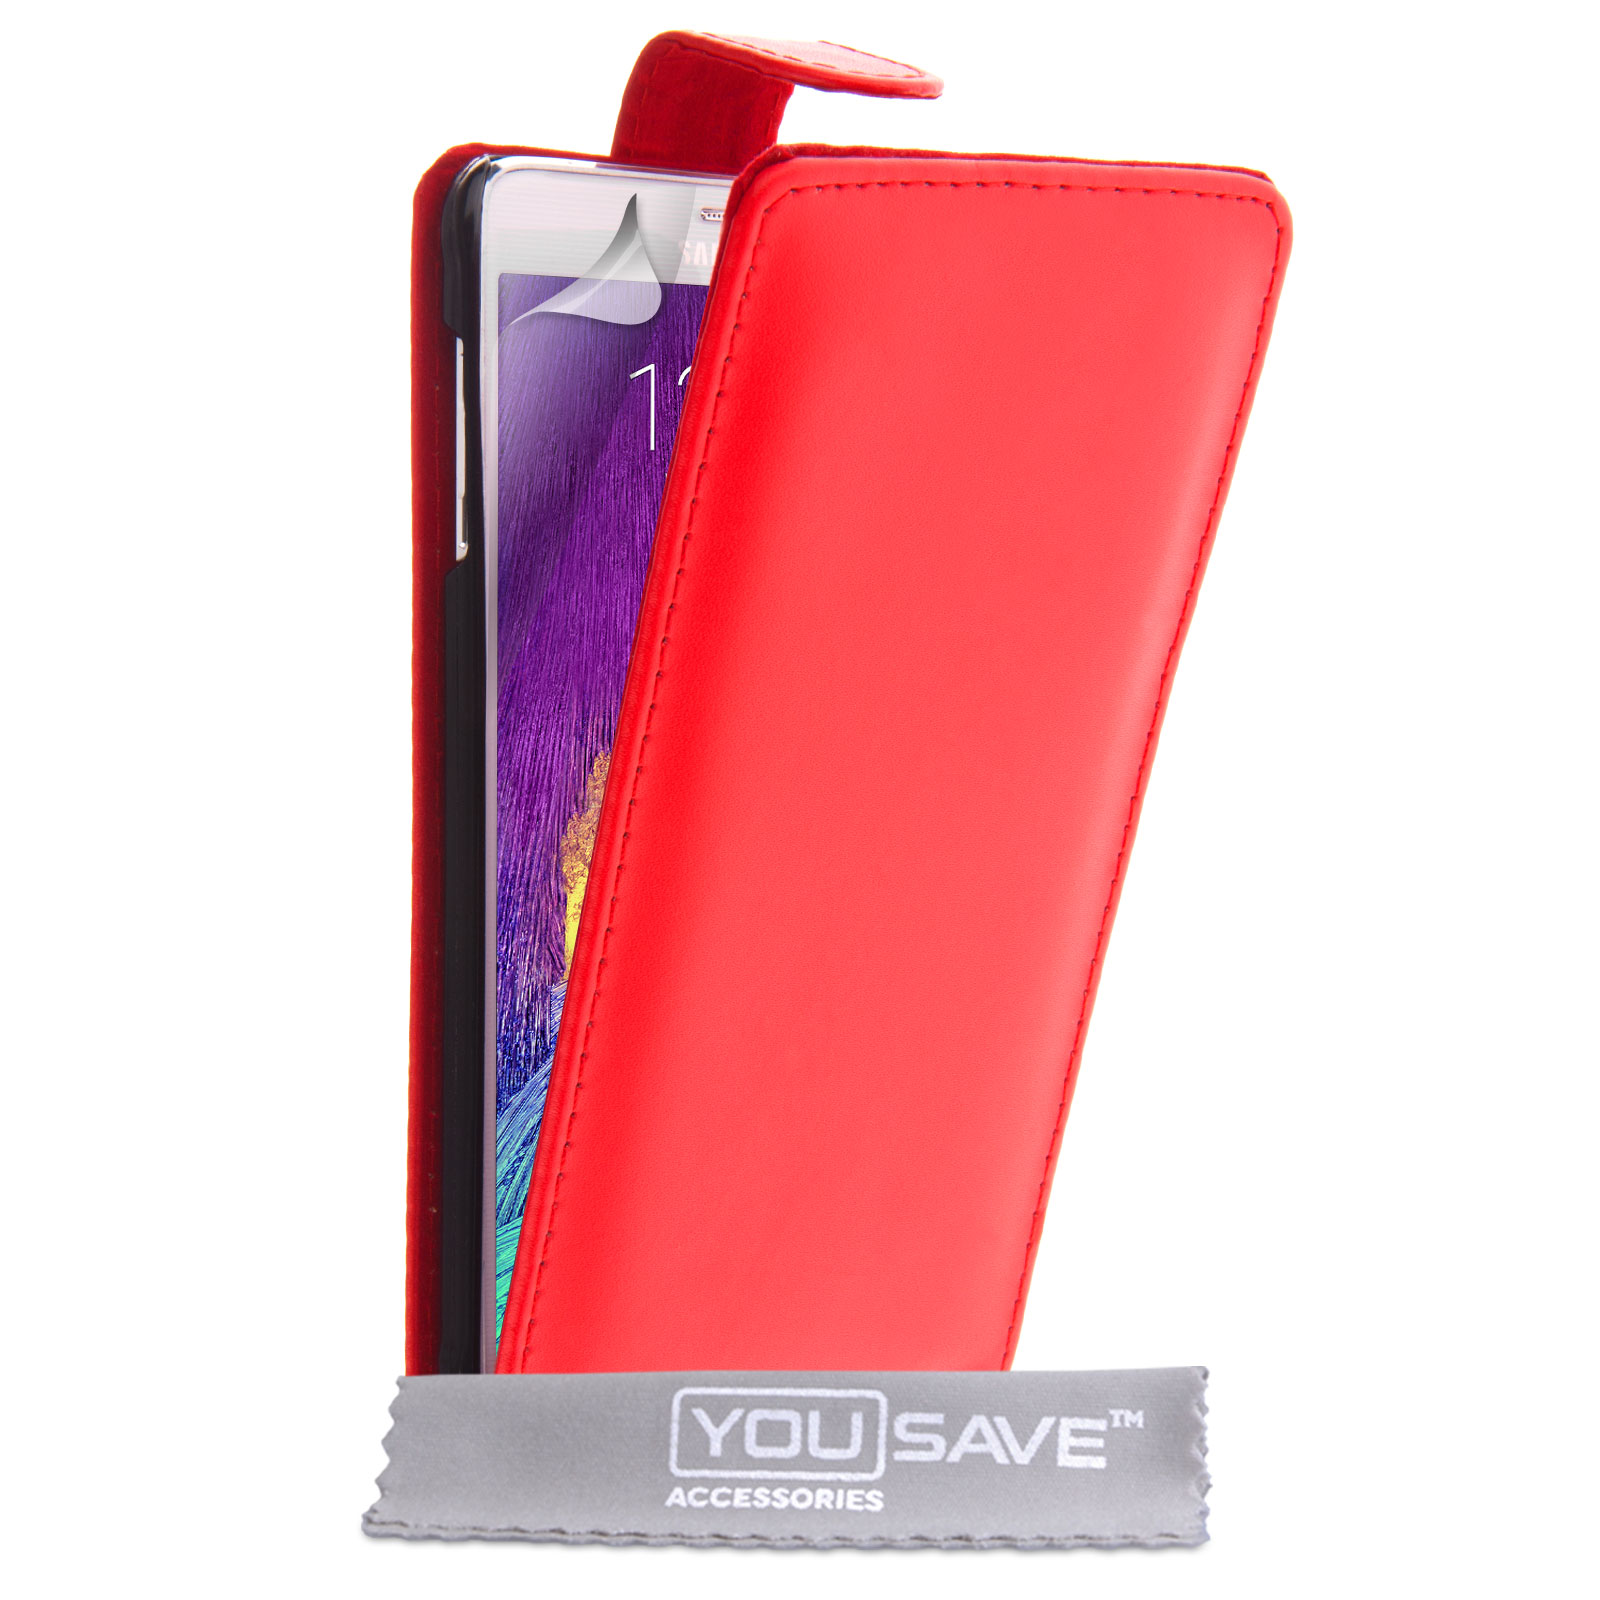 YouSave Samsung Galaxy Note 4 Leather-Effect Flip Case - Red